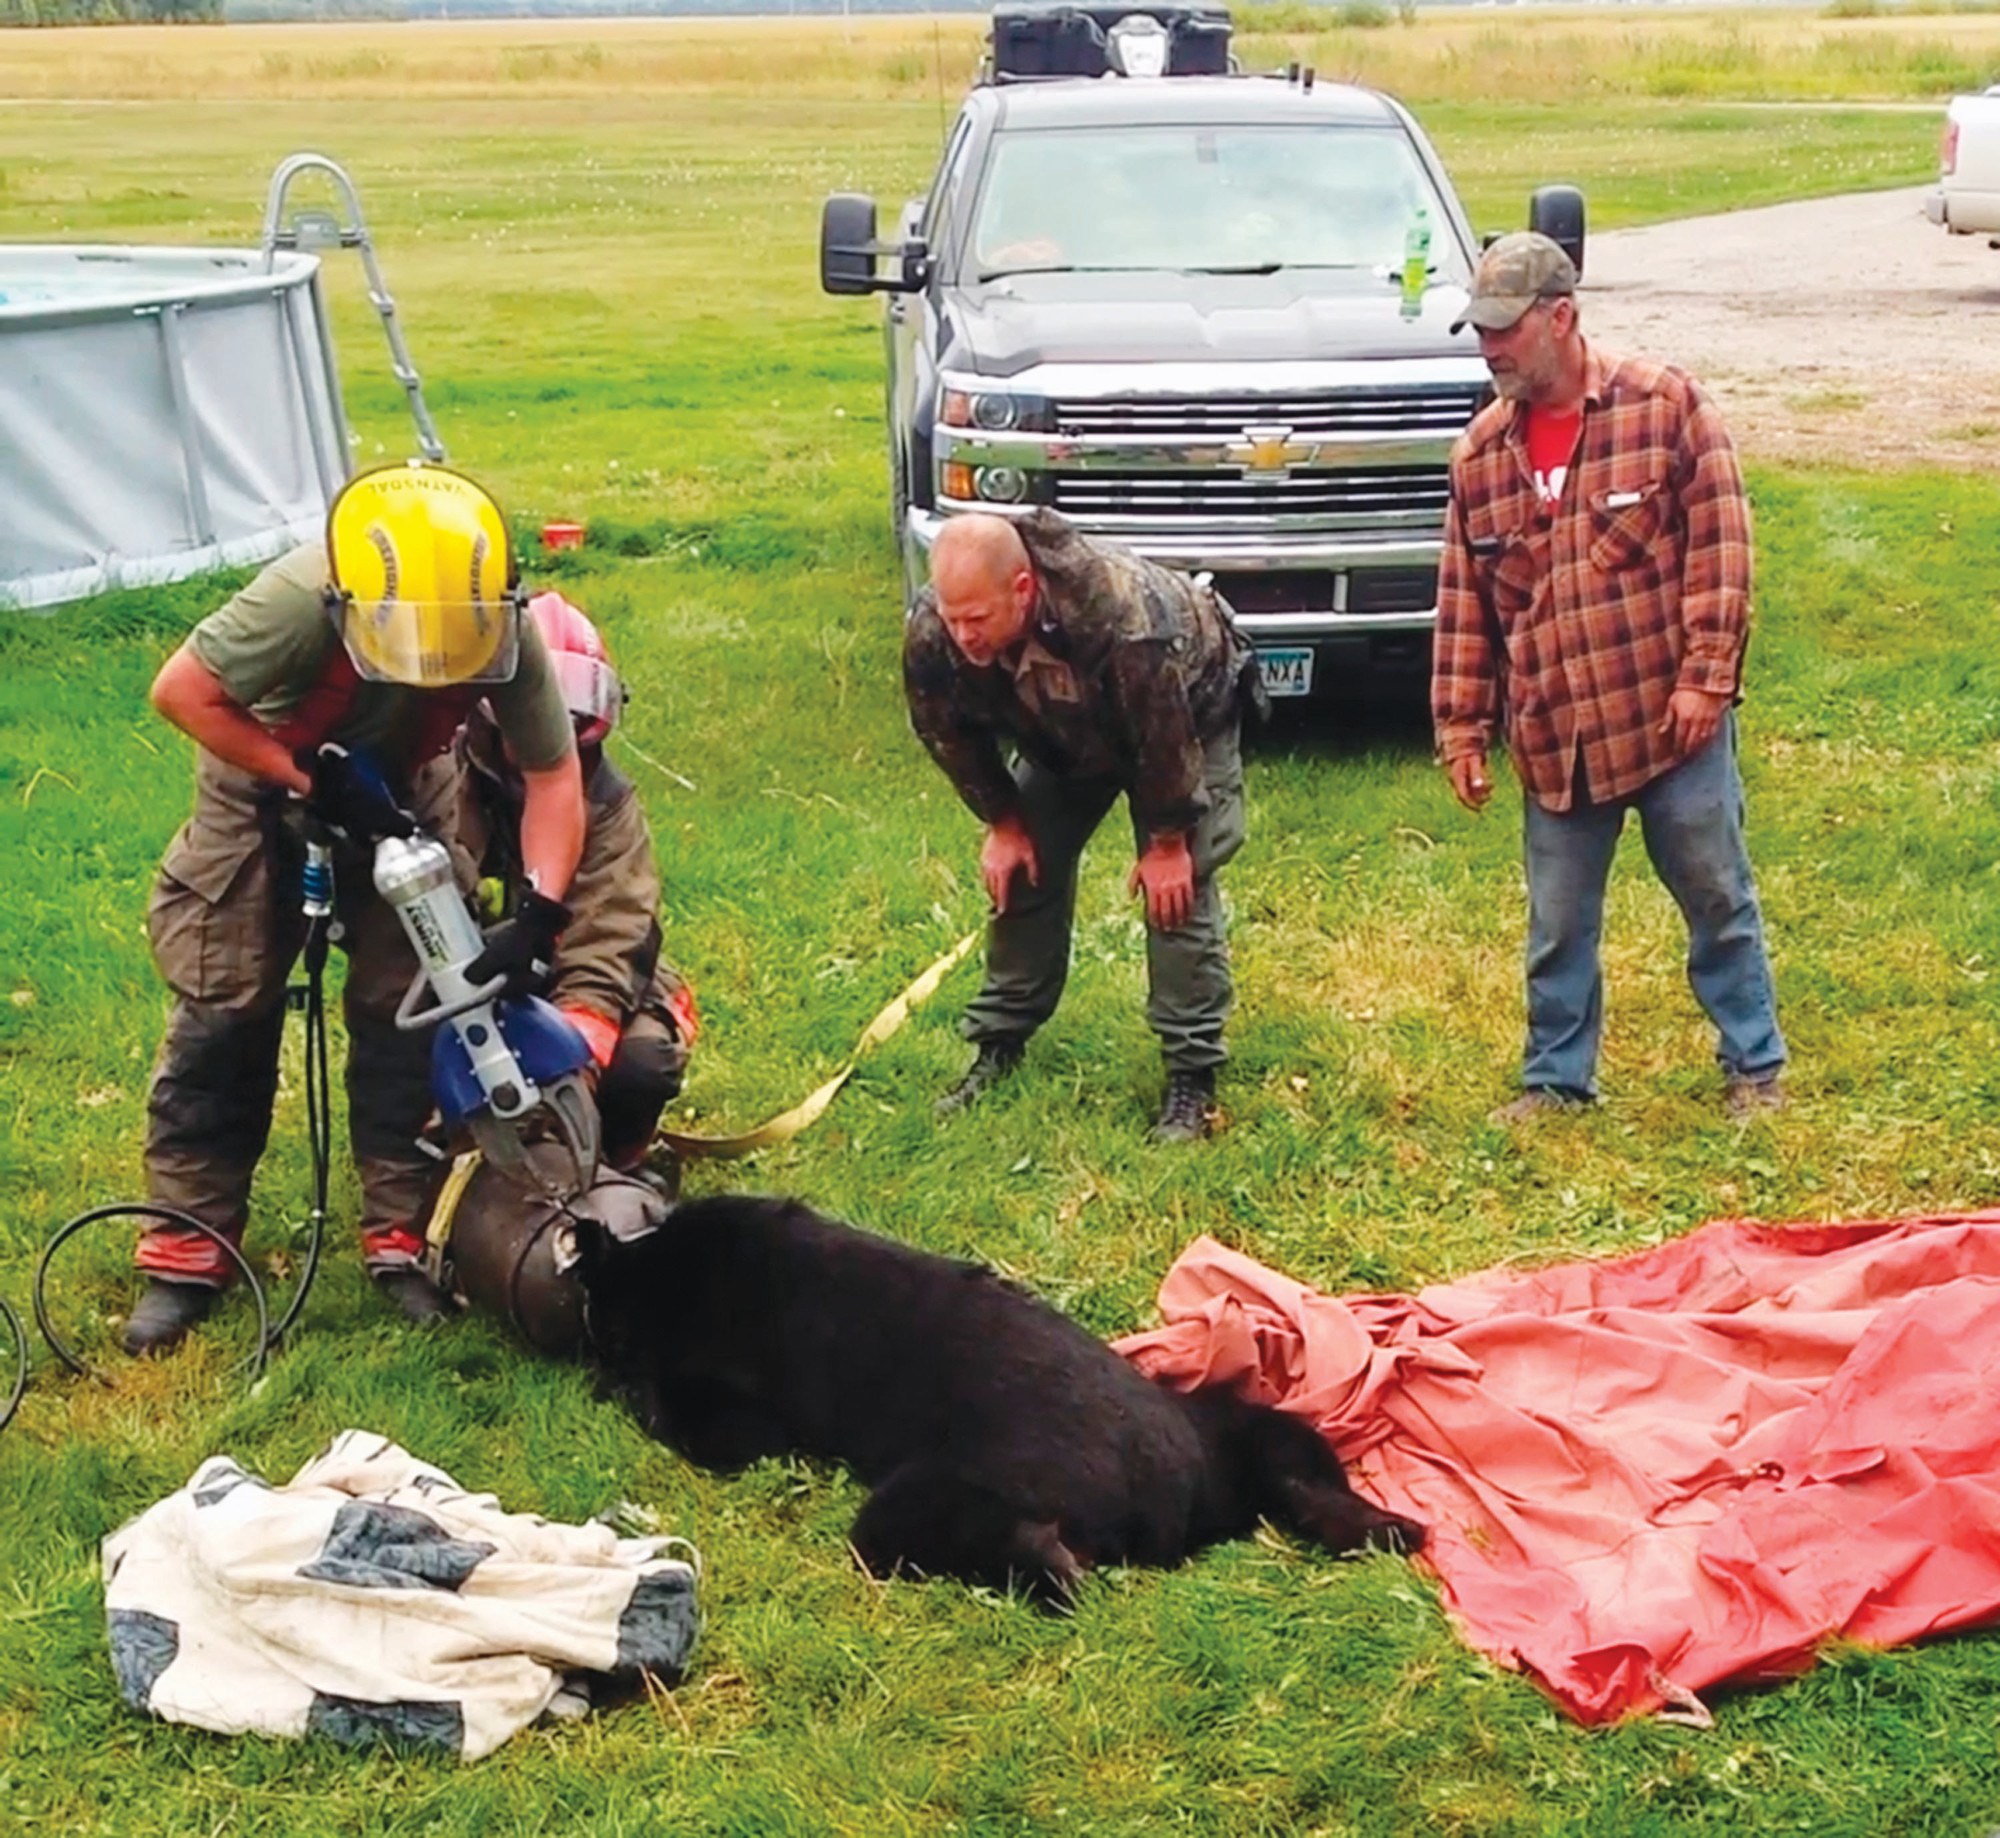 THE ASSOCIATED PRESSIn this photo provided by Dawn Knutson, rescue personnel use the Jaws of Life to free a black bear after its head became stuck inside a 10-gallon milk can near Roseau, Minnesota.